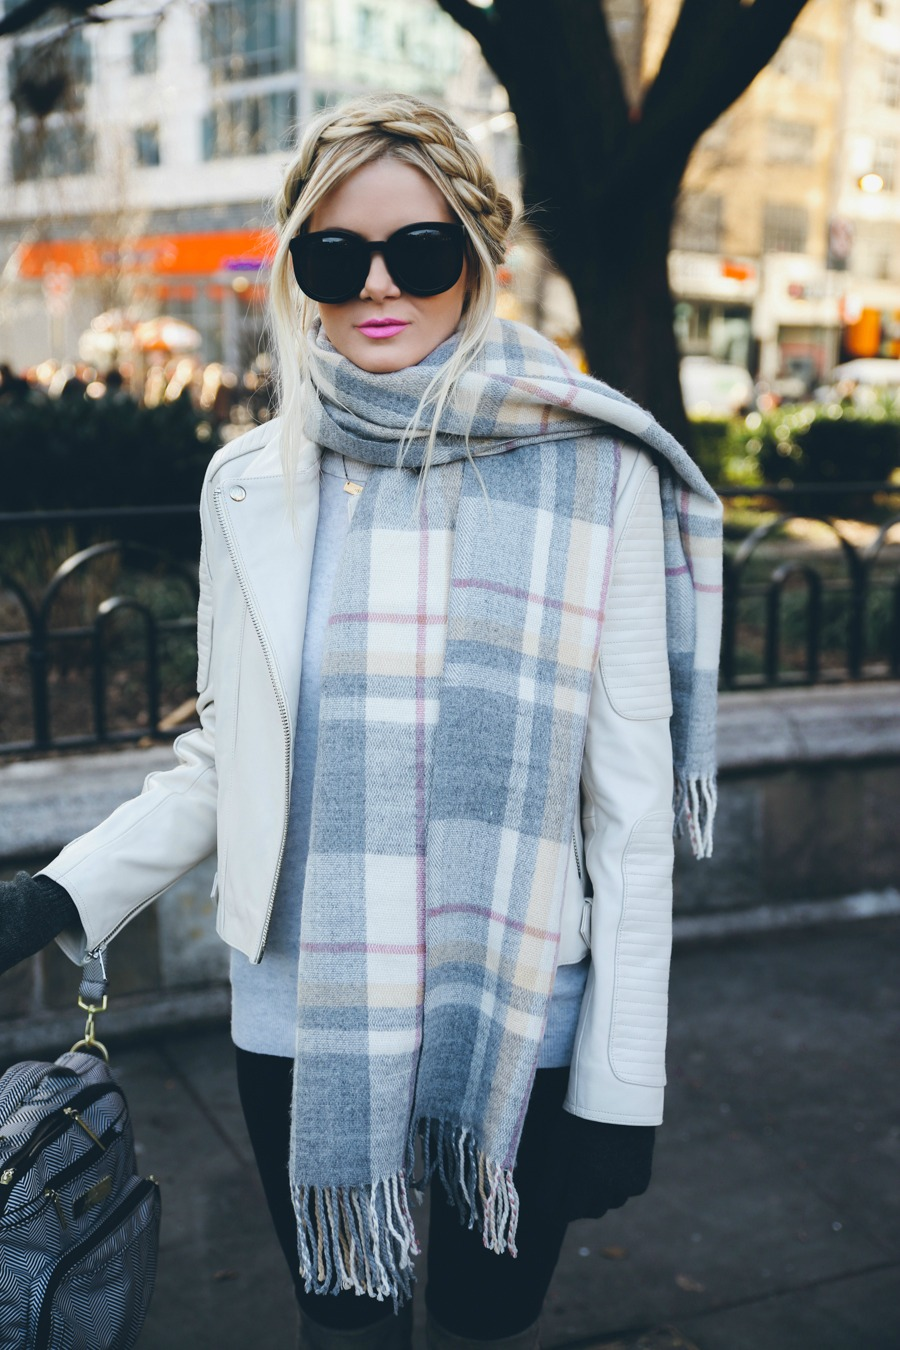 841a44cc30b69 Amber Fillerup Clark is wearing an oversized grey check with tassels from  Asos